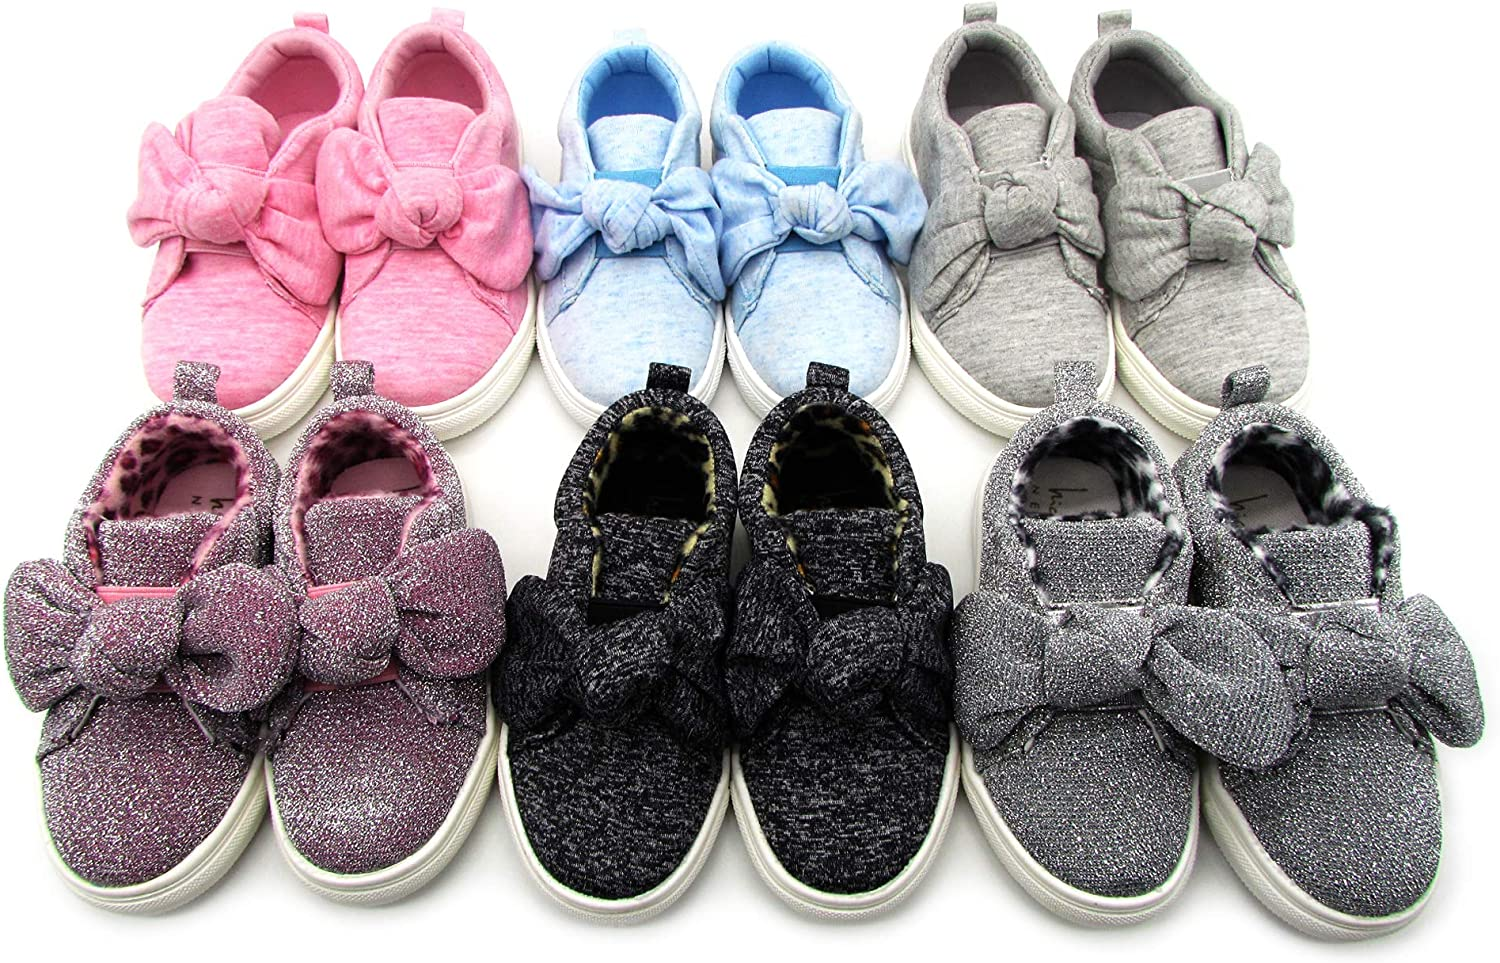 Nicole Miller New York Toddler Girls Slip-On